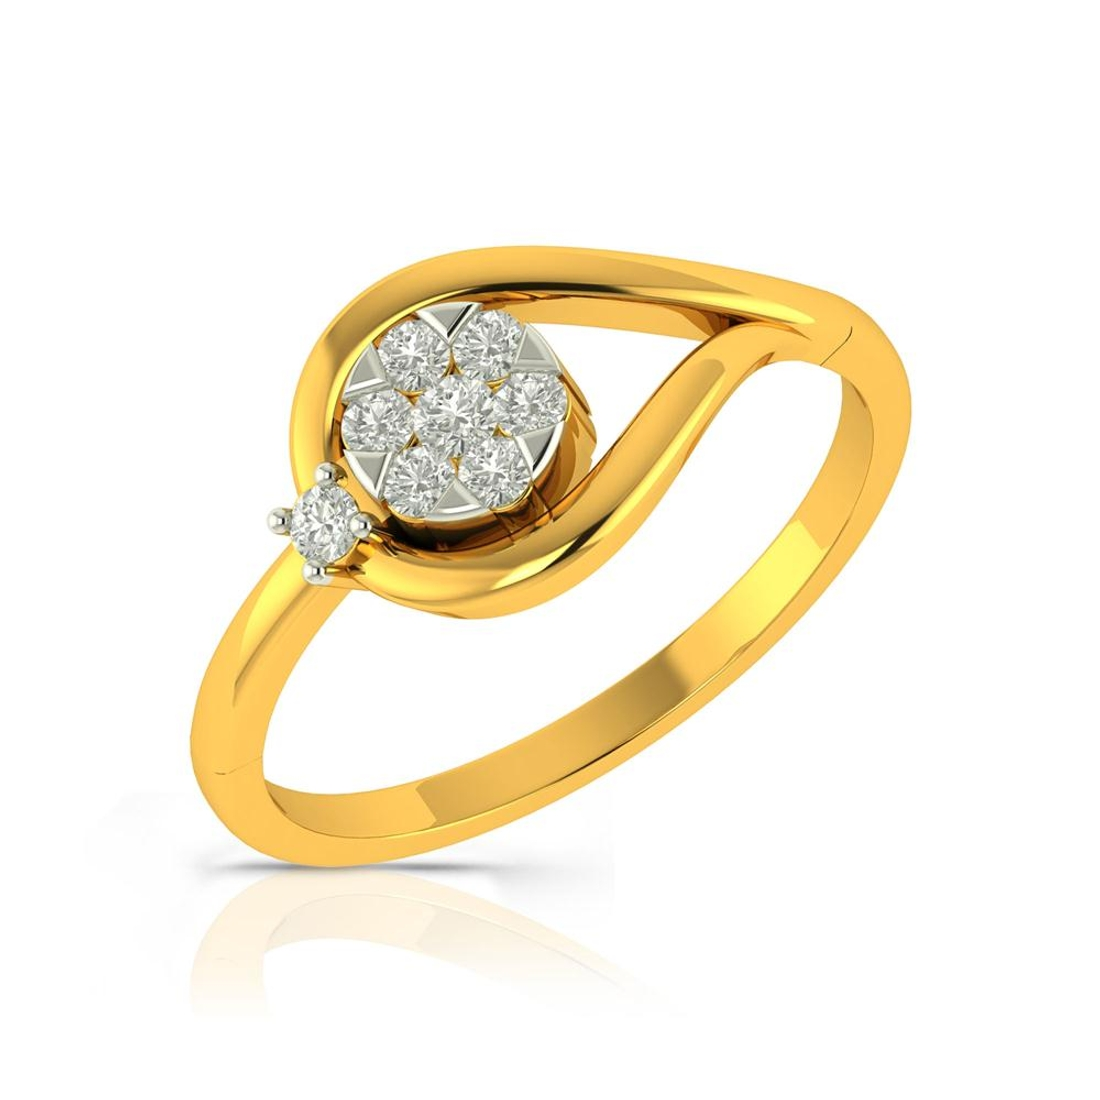 Buy Charu Jewels Diamond Ladies Ring CJLR0409 Online in India